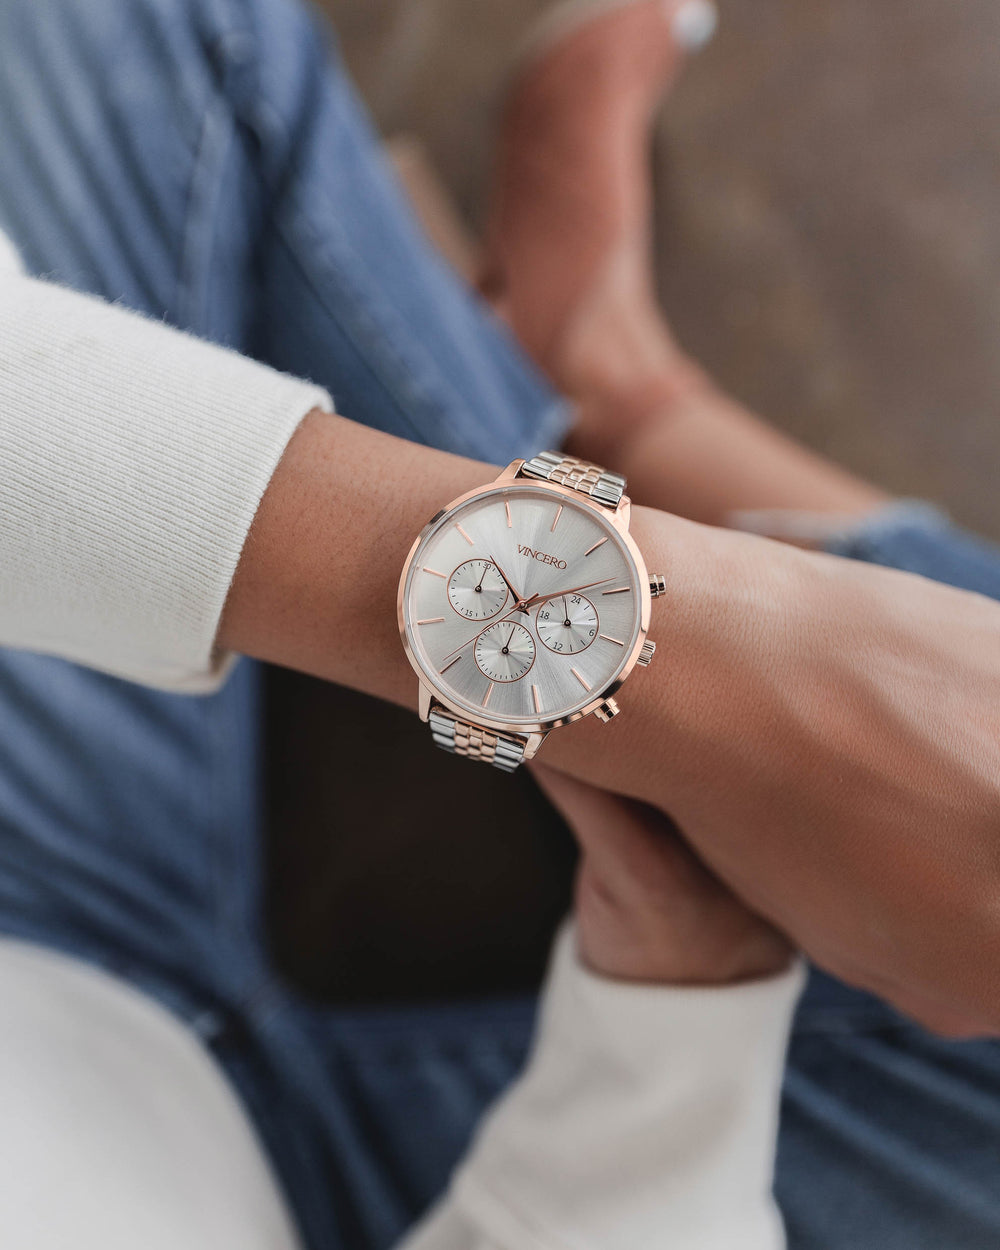 Women's Luxury Kleio Chronograph Watch Rose Gold Stainless Steel Strap Band Satin White Watch Face Rose Gold Case Clasp